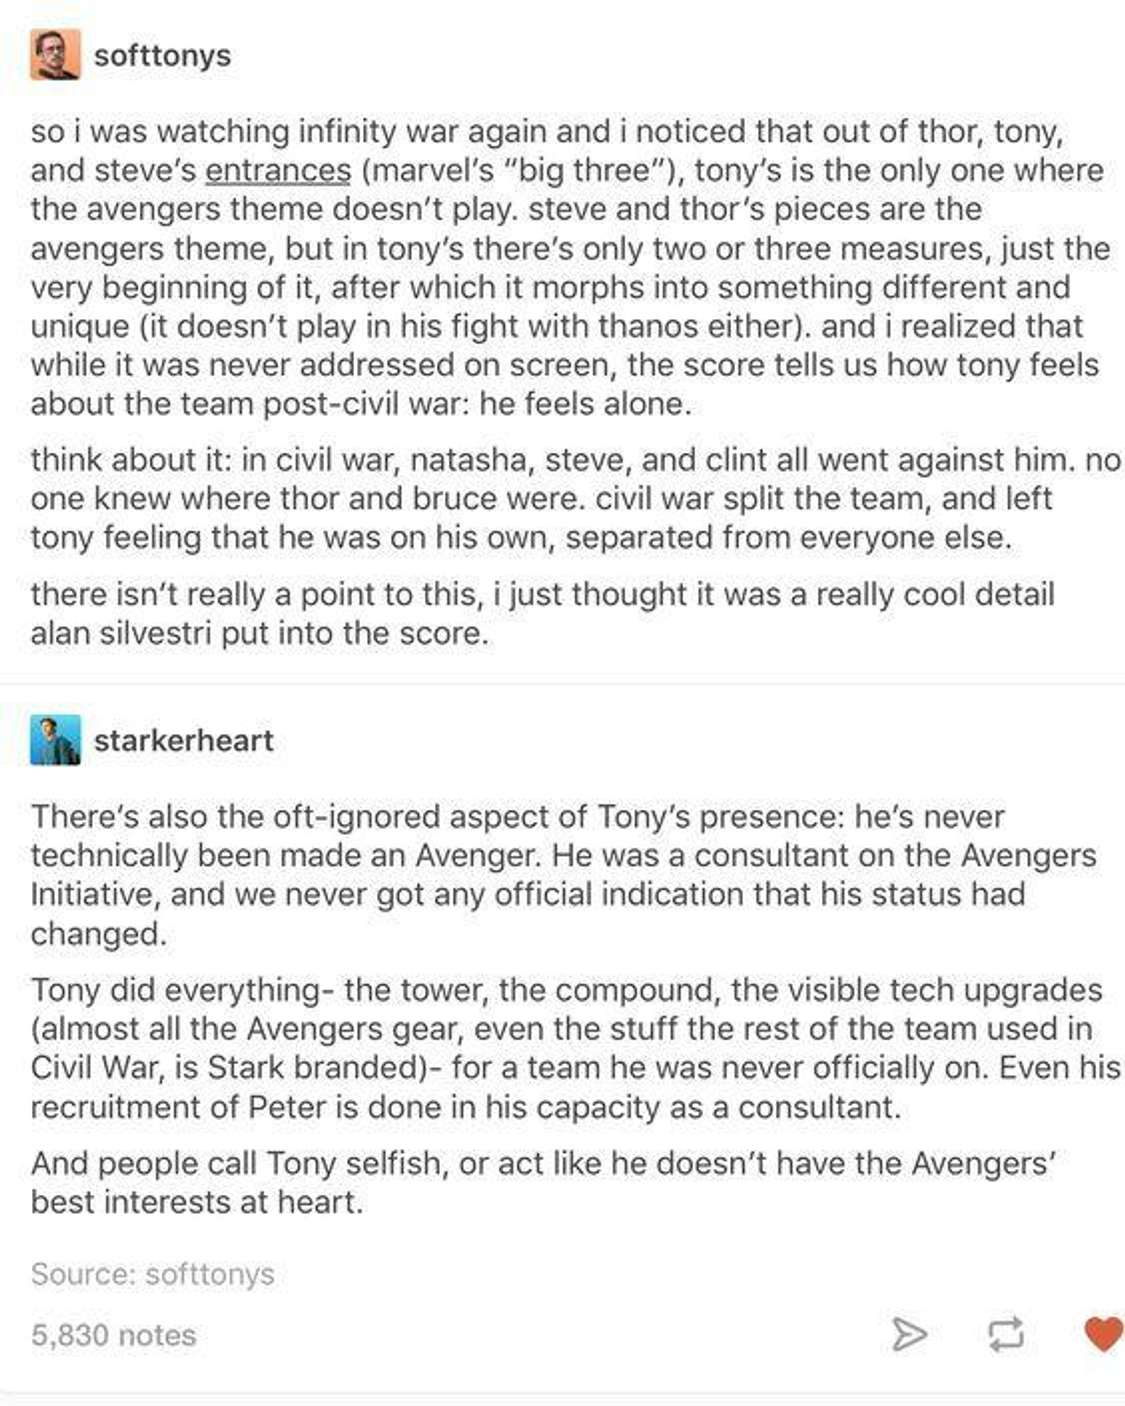 His role as an Avenger